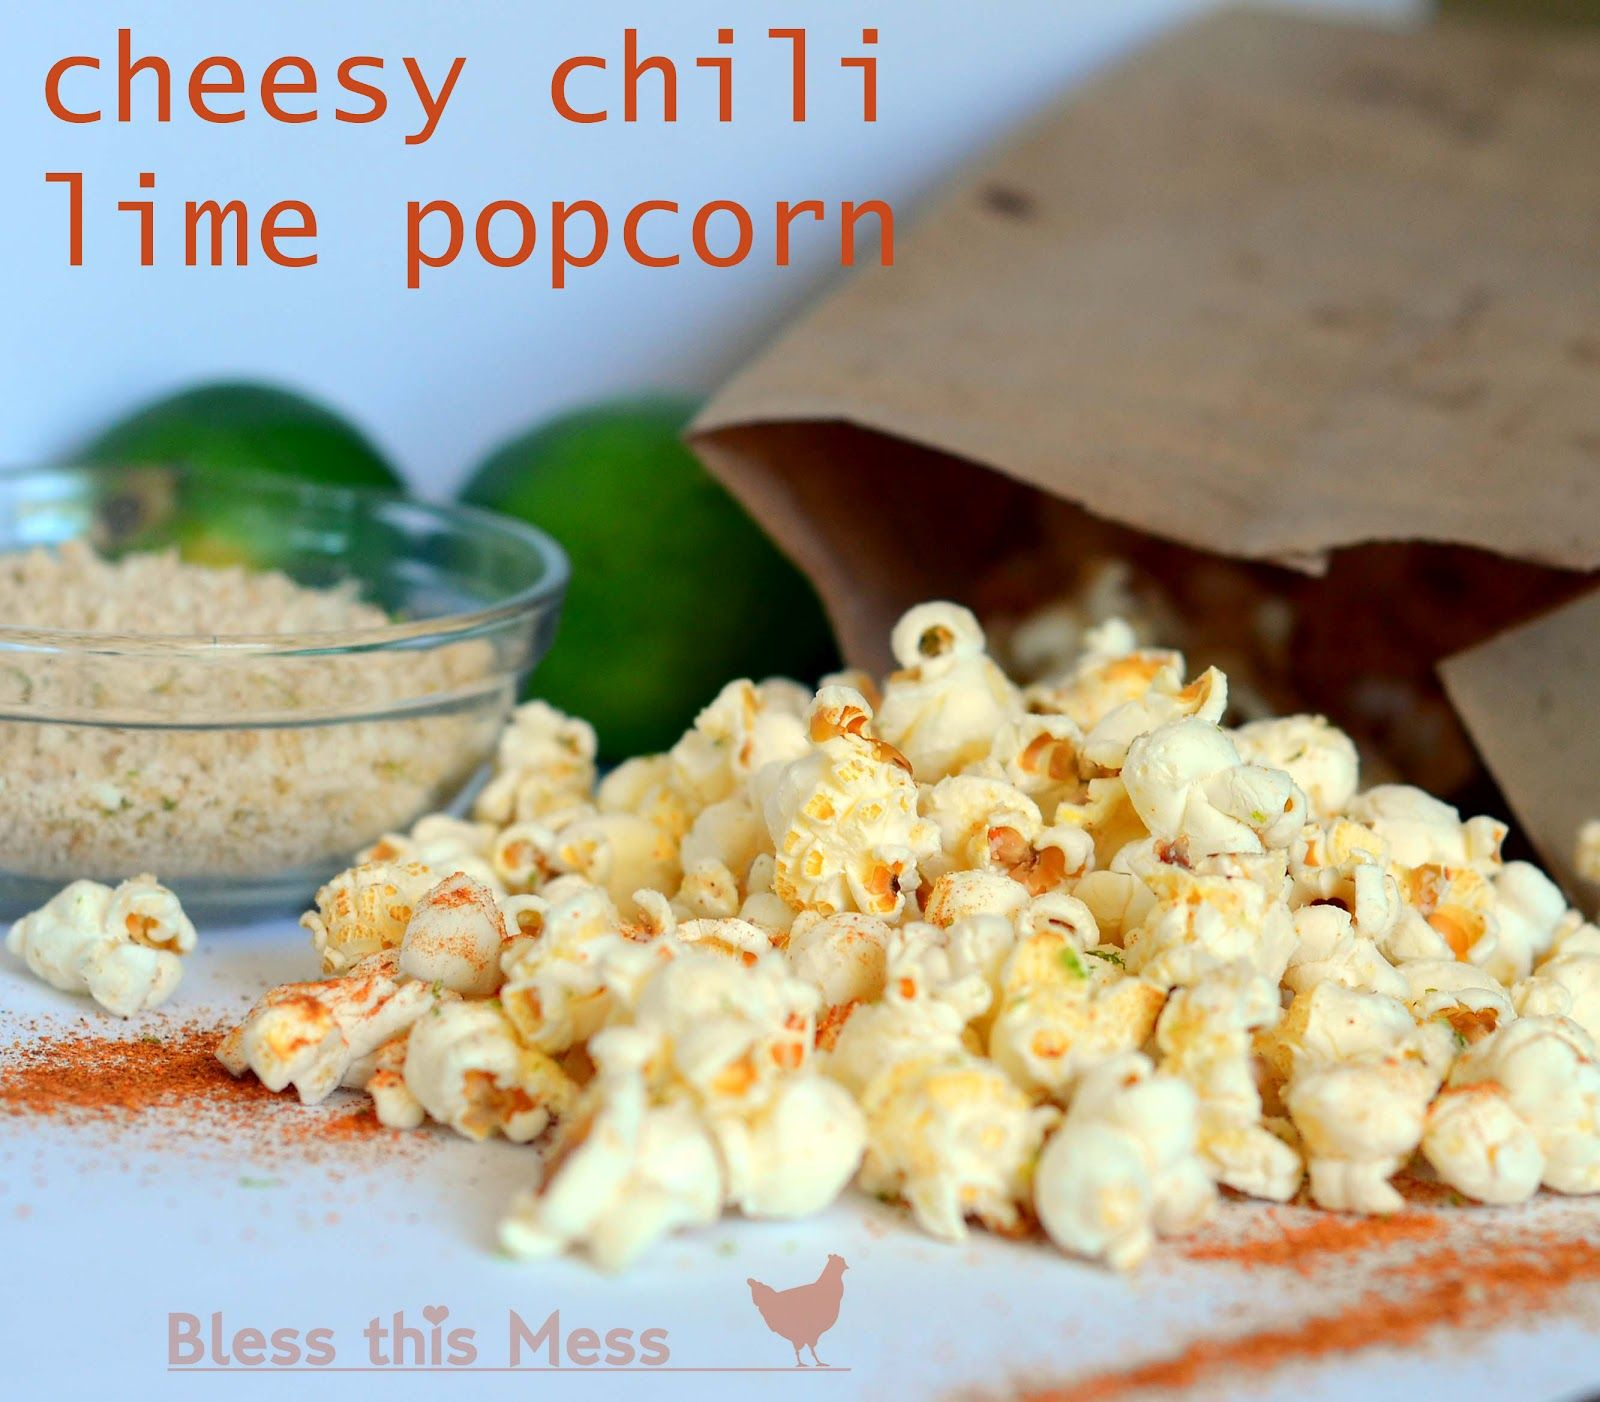 Bless This Mess: Cheesy Chili Lime Popcorn